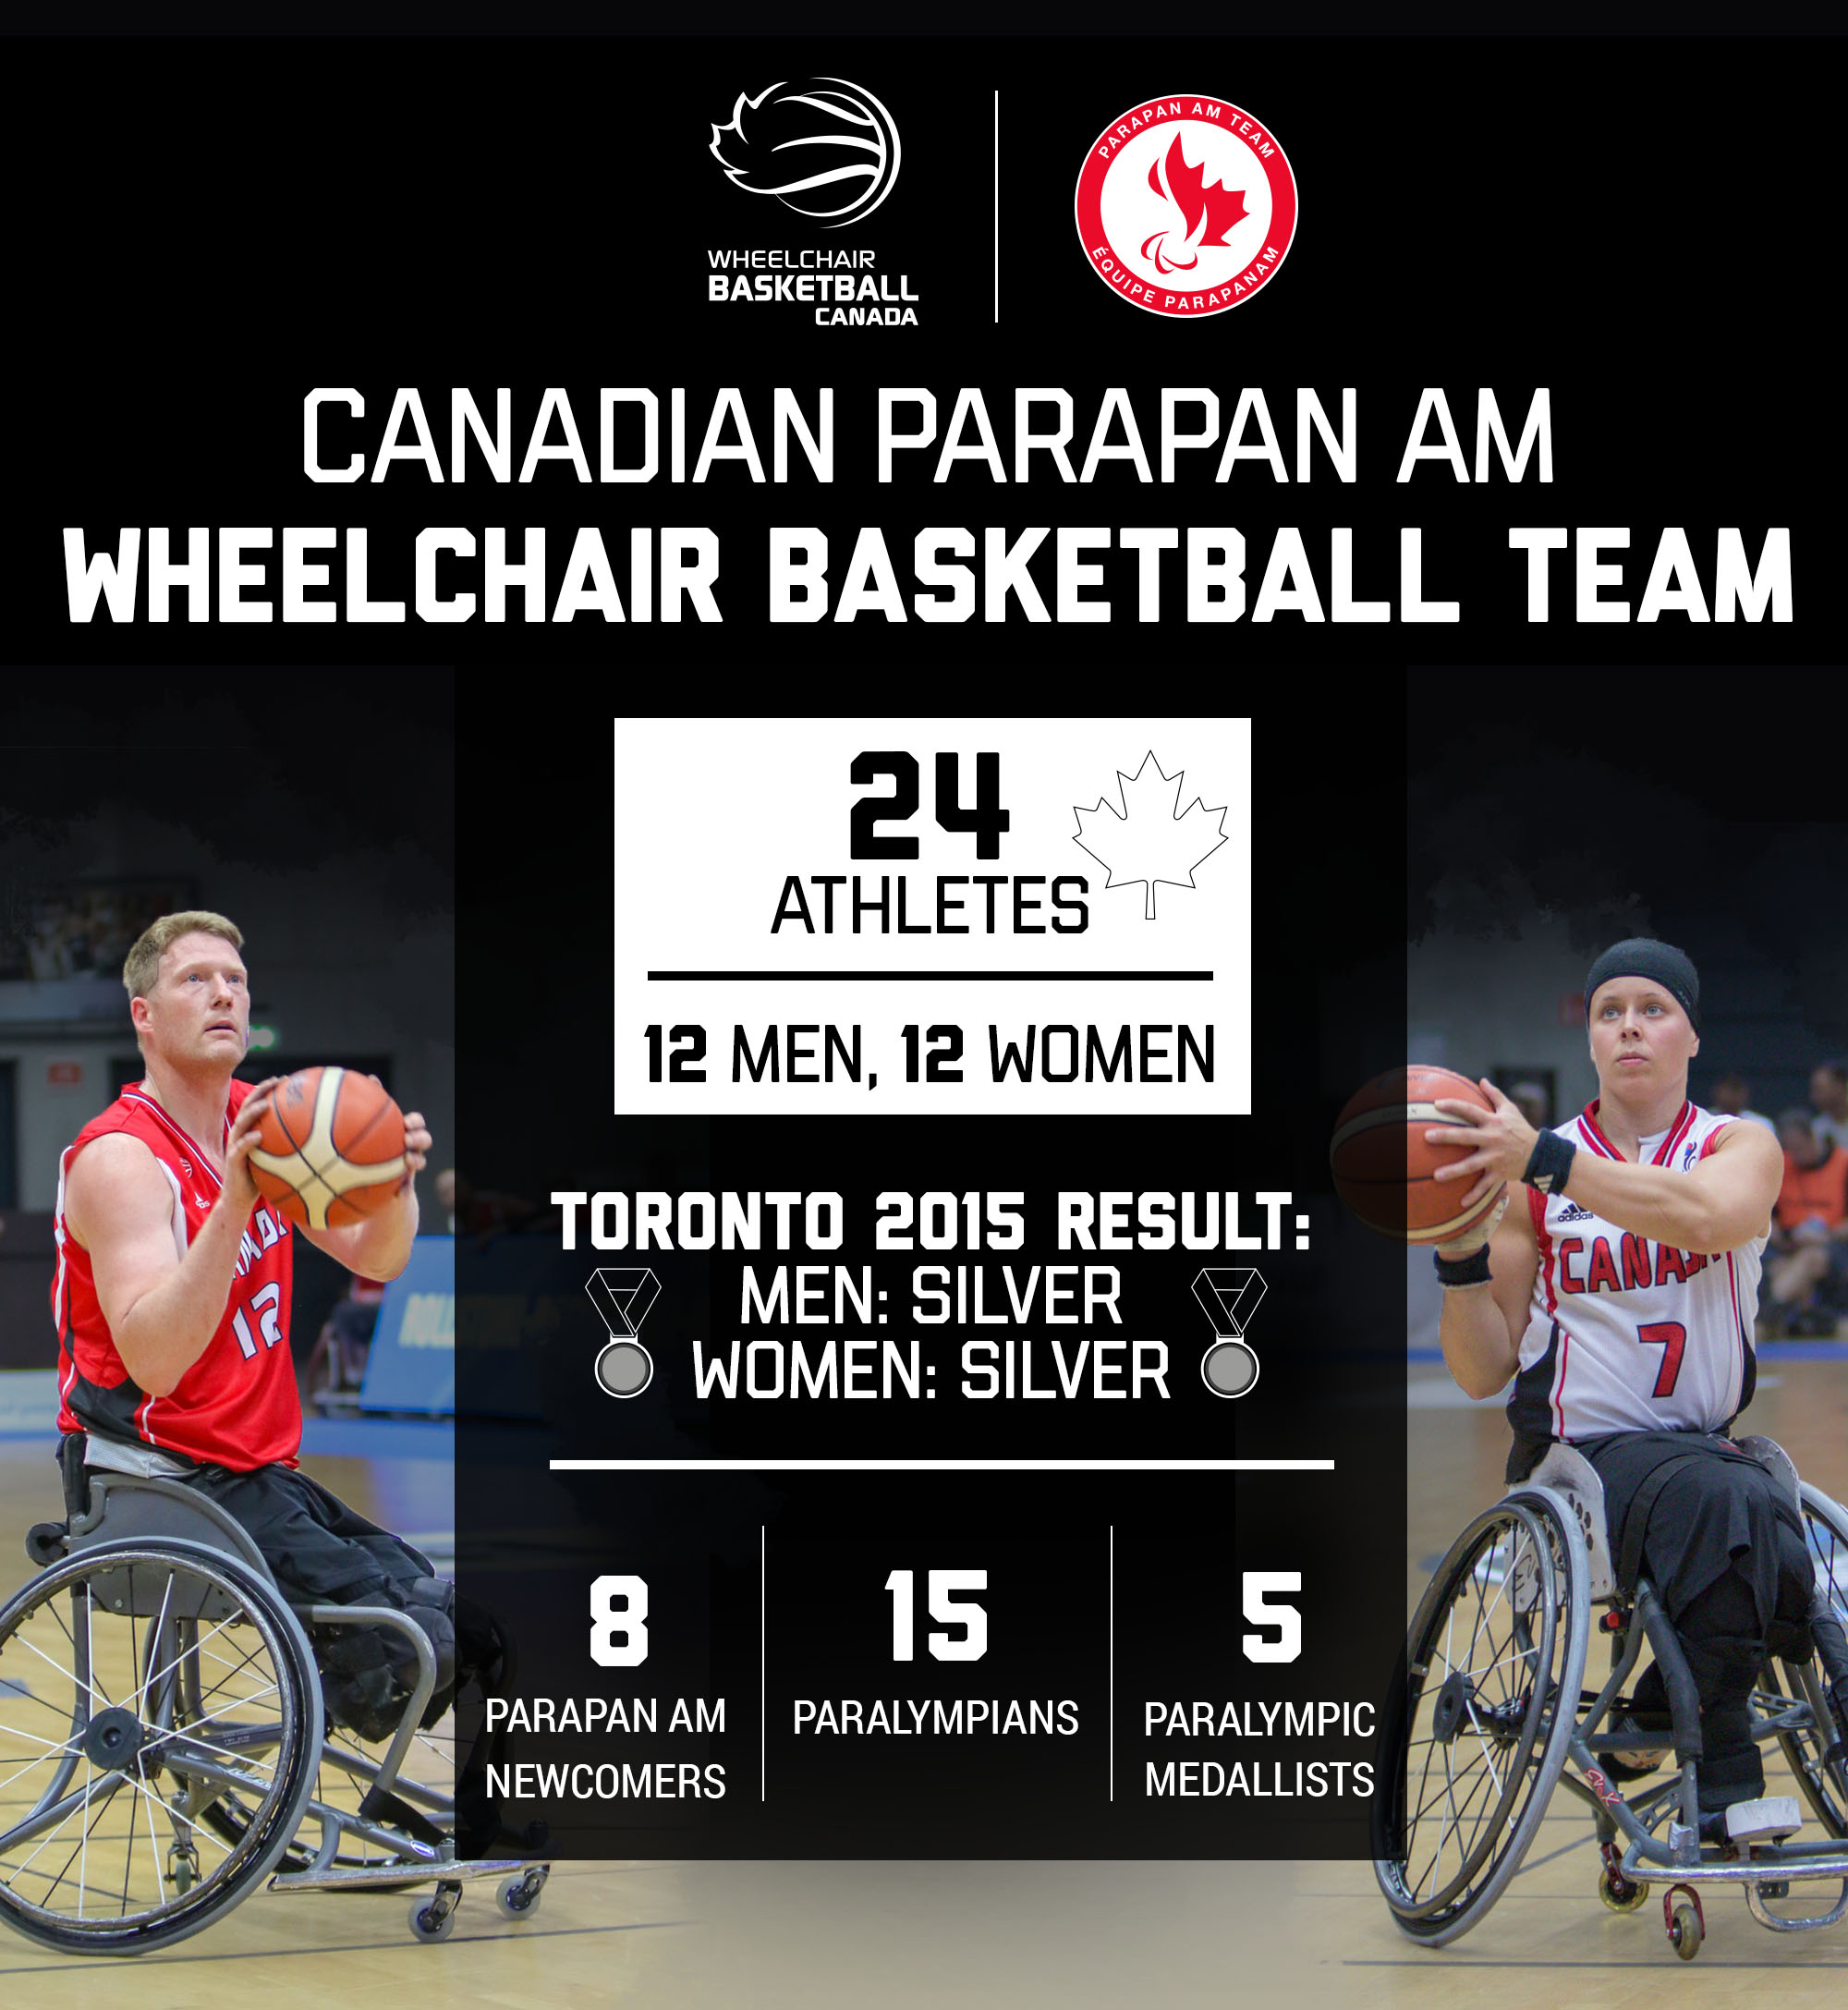 A graphic showing the make-up of the Canadian Parapan Am Wheelchair Basketball Team.